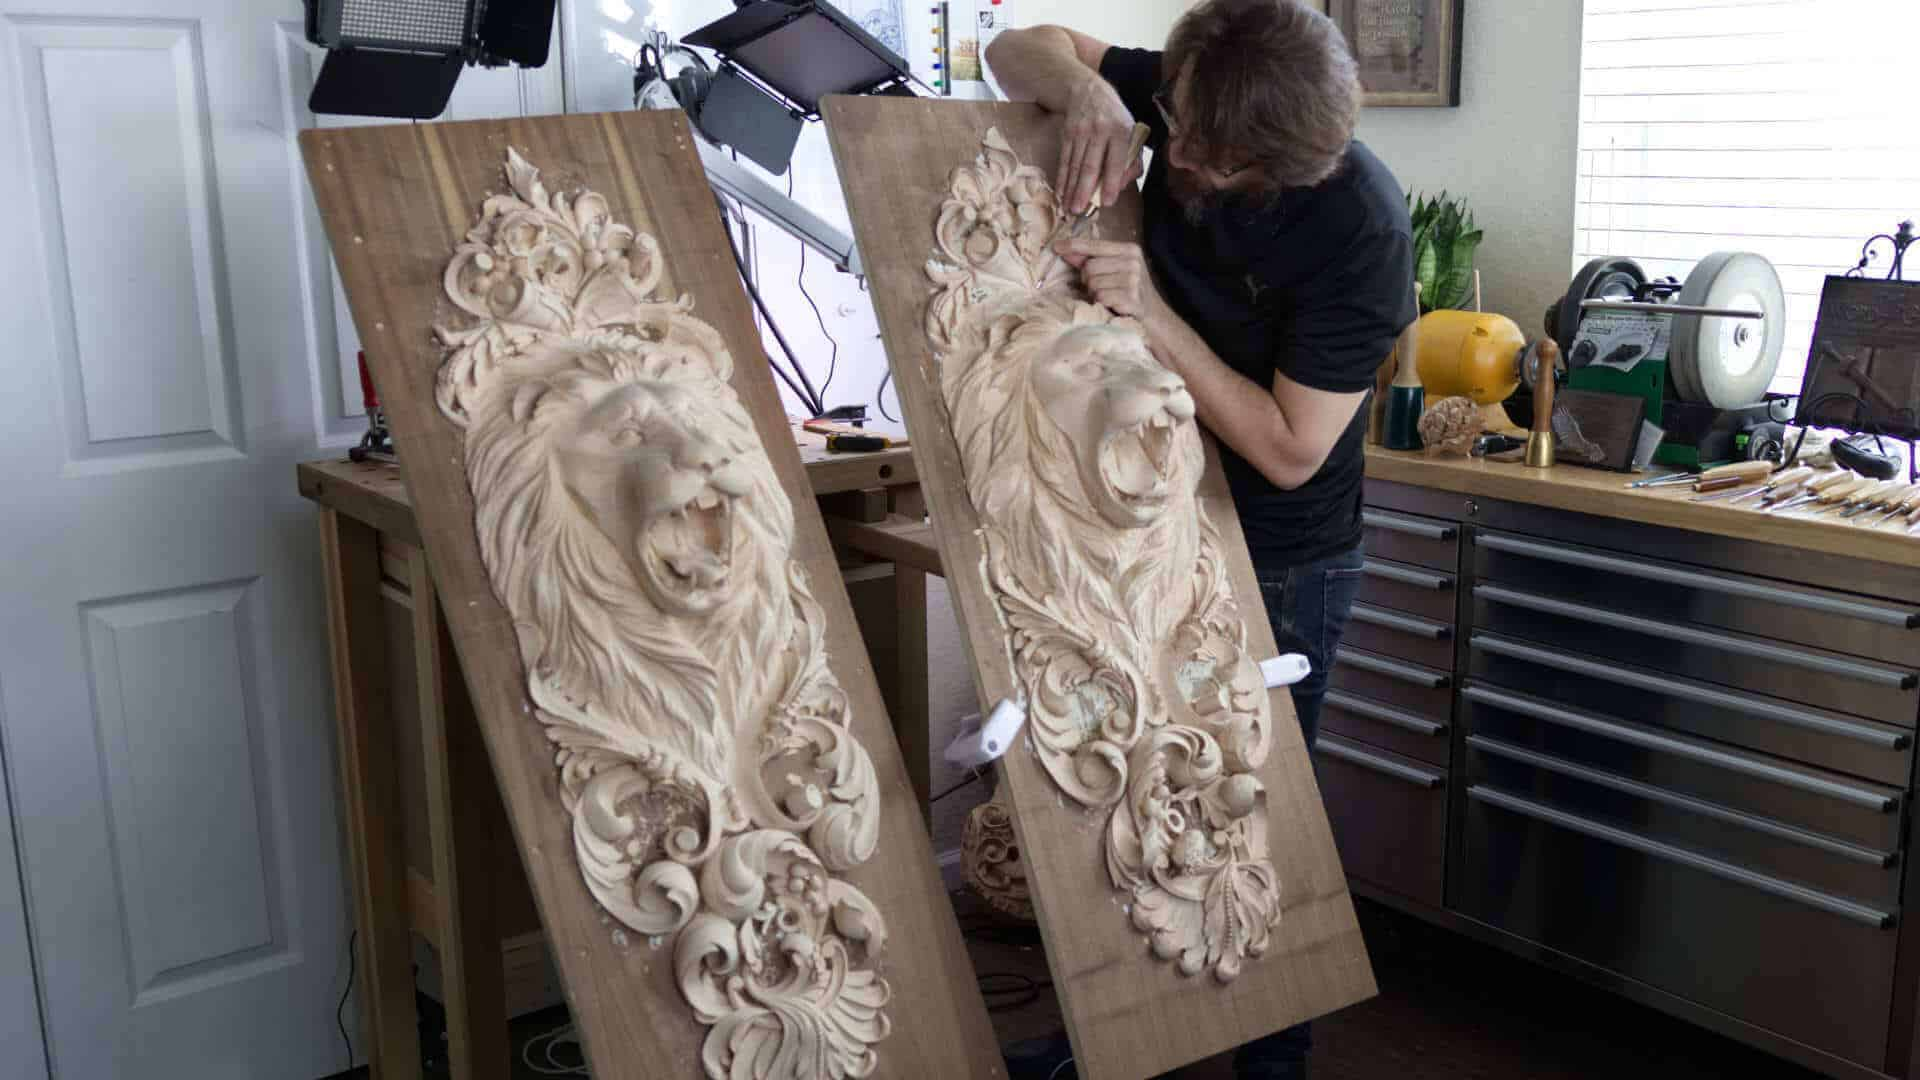 What Is The Best Wood For Wood Carving?